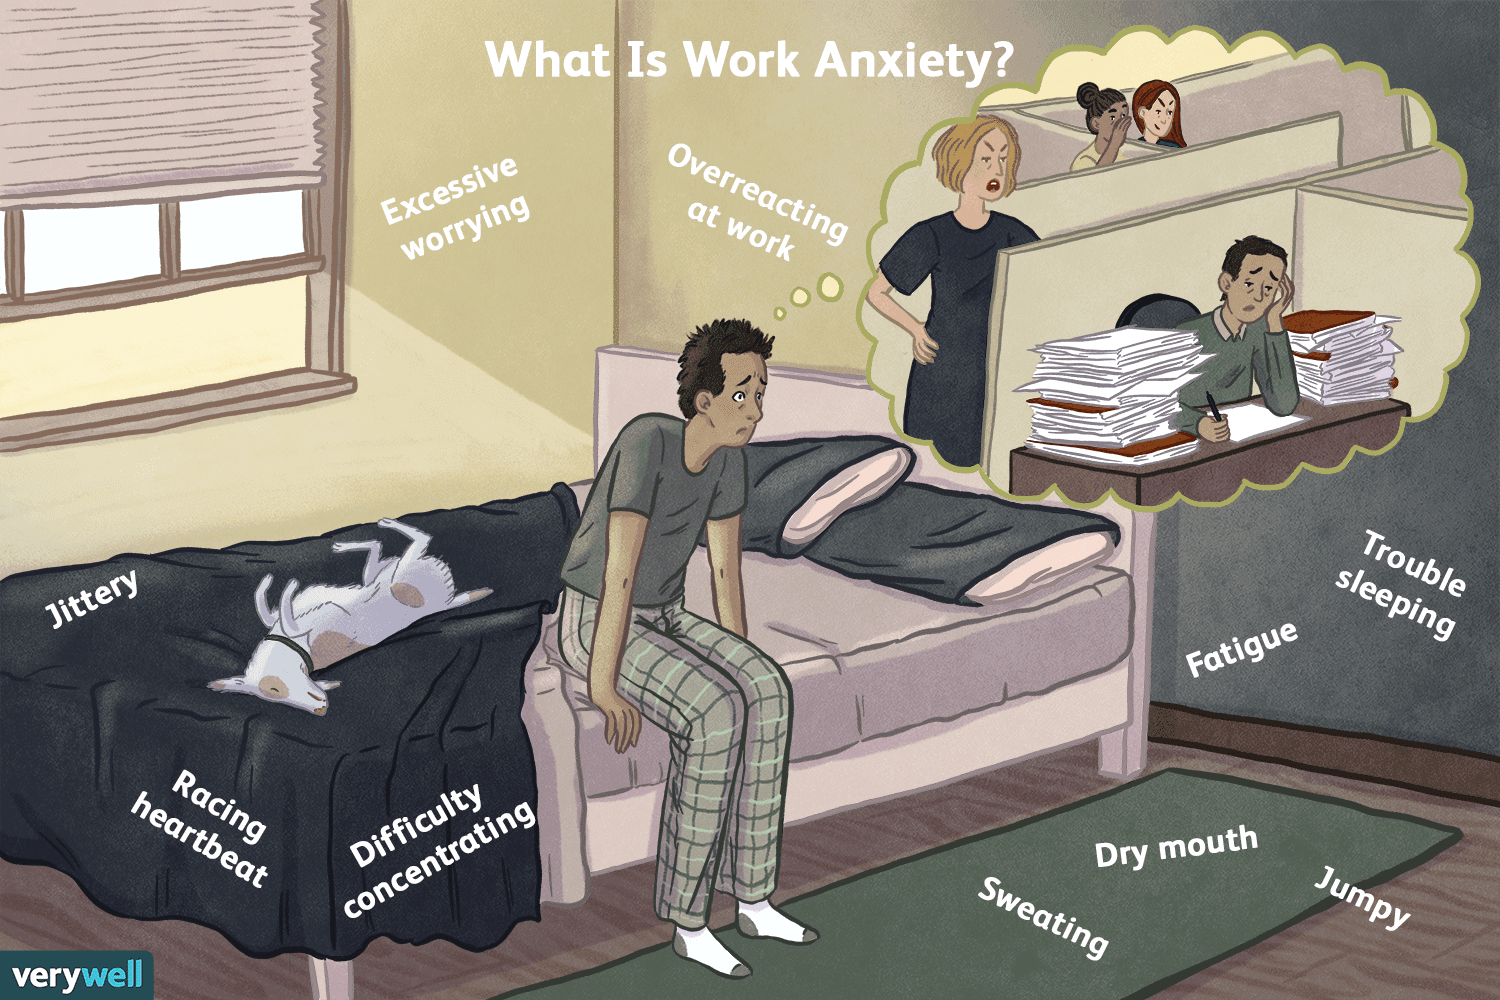 An Overview of Work Anxiety